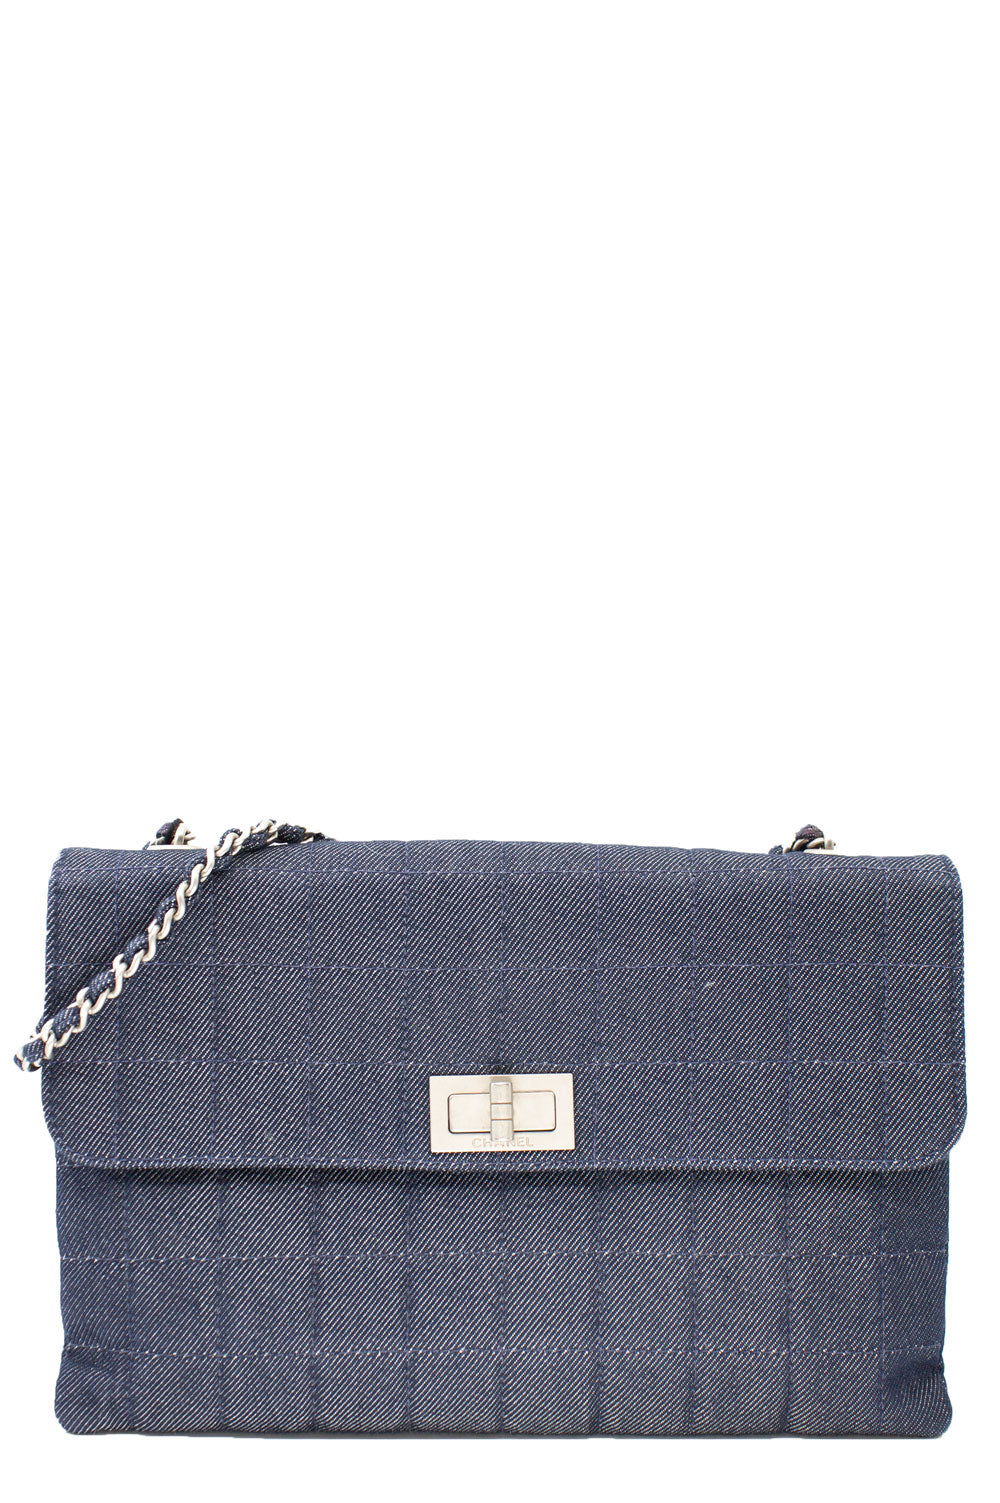 CHANEL Chocolate Bar Denim Bag